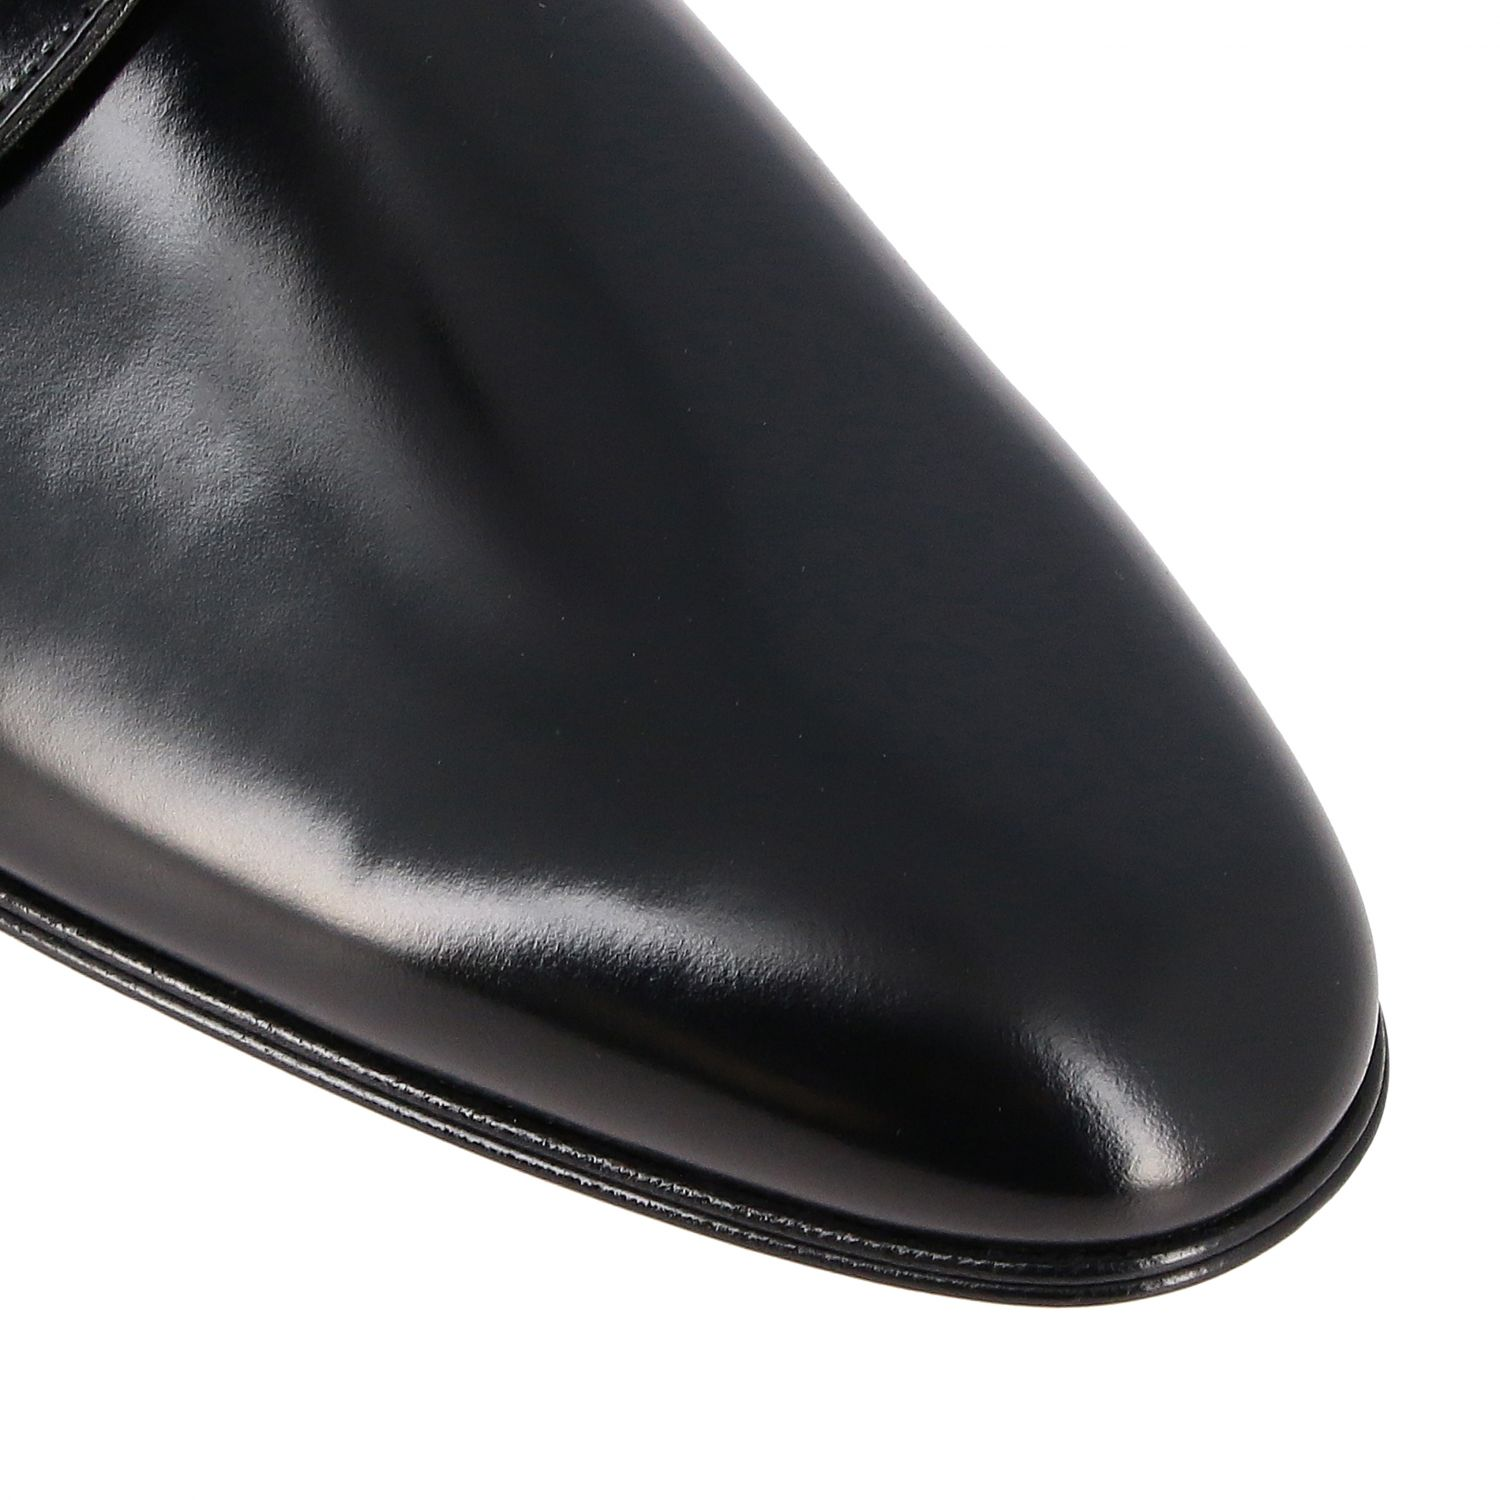 Brogue shoes Dolce & Gabbana: Dolce & Gabbana classic lace-up shoe in shiny leather black 4